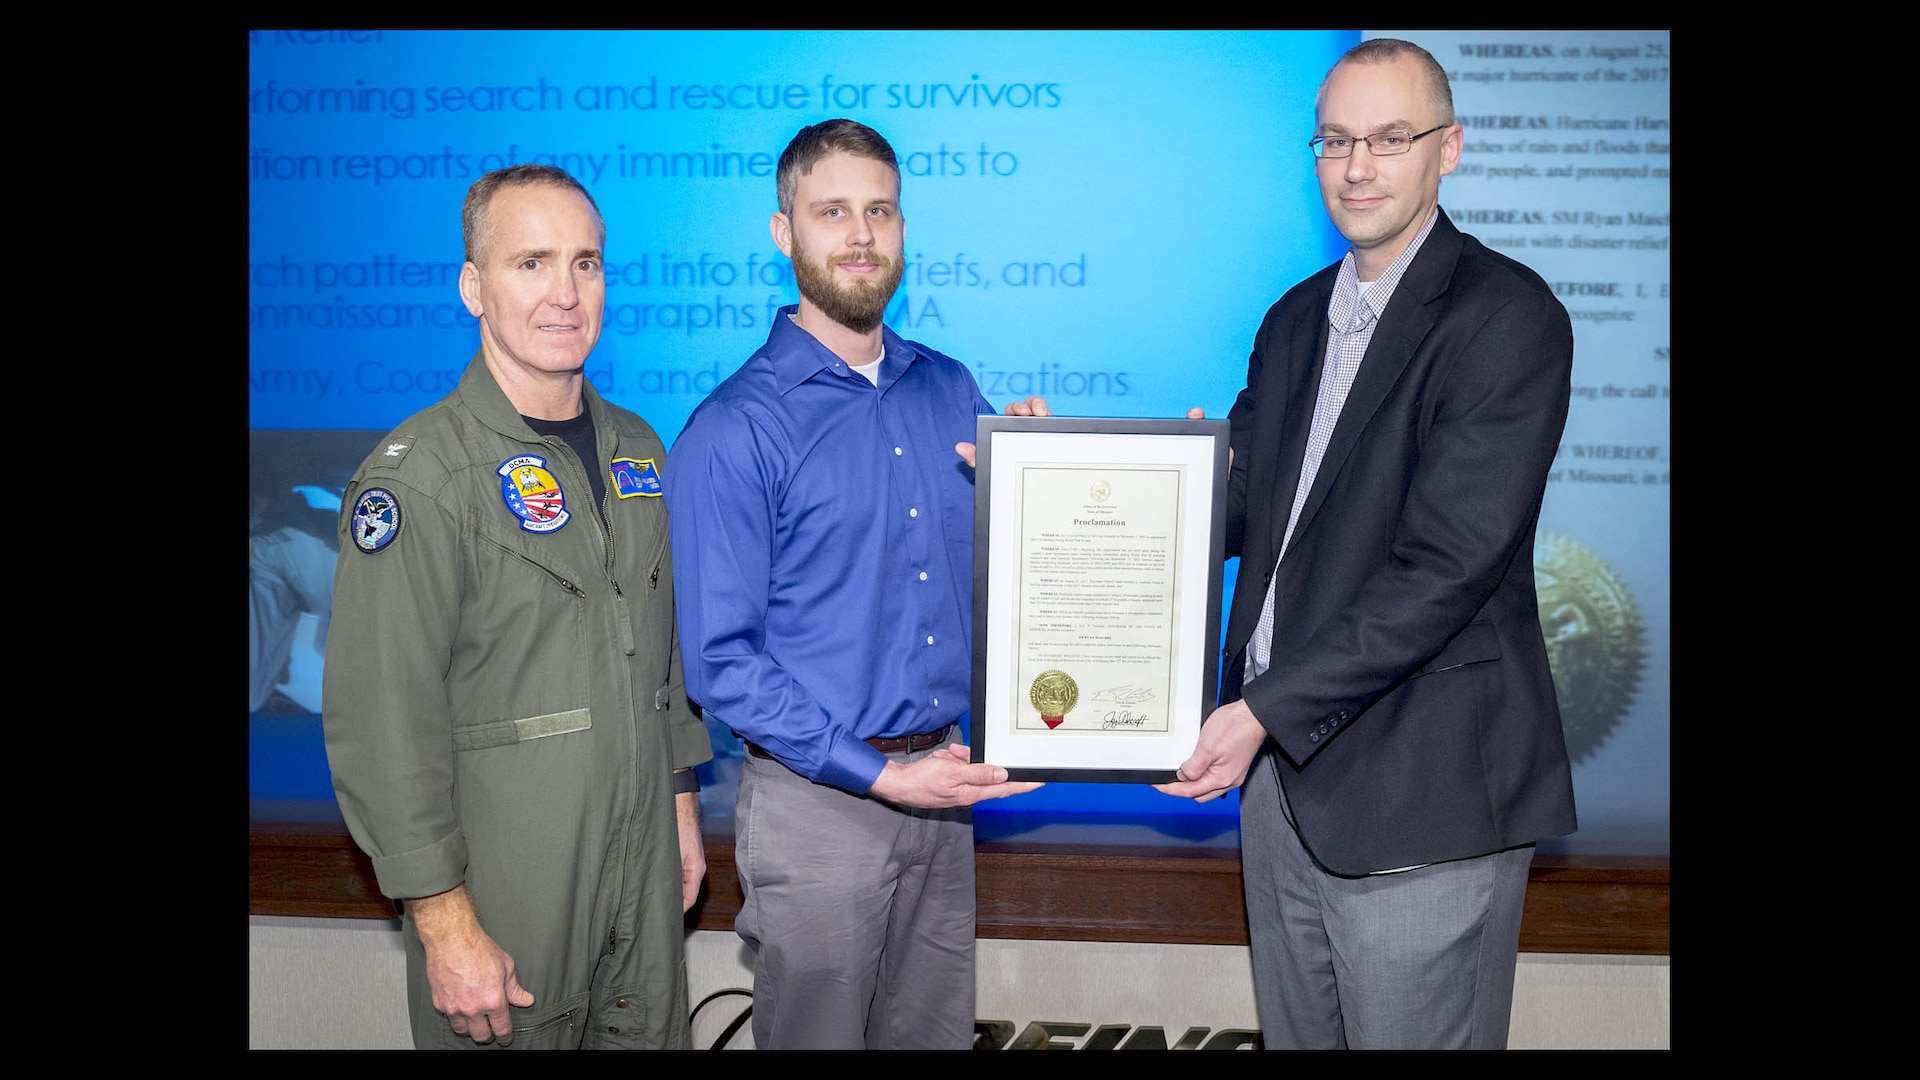 """Defense Contract Management Agency Boeing St. Louis Commander Navy Capt. Paul Filardi and his Quality Assurance Director Steve Santel present Quality Assurance Specialist Ryan Maichel (center) with a commendation signed by Missouri Gov. Eric Greitens """"for his selfless actions in performing search and rescue operations and disaster relief in response to Hurricane Harvey."""" (Photo courtesy of DCMA Boeing St. Louis)"""